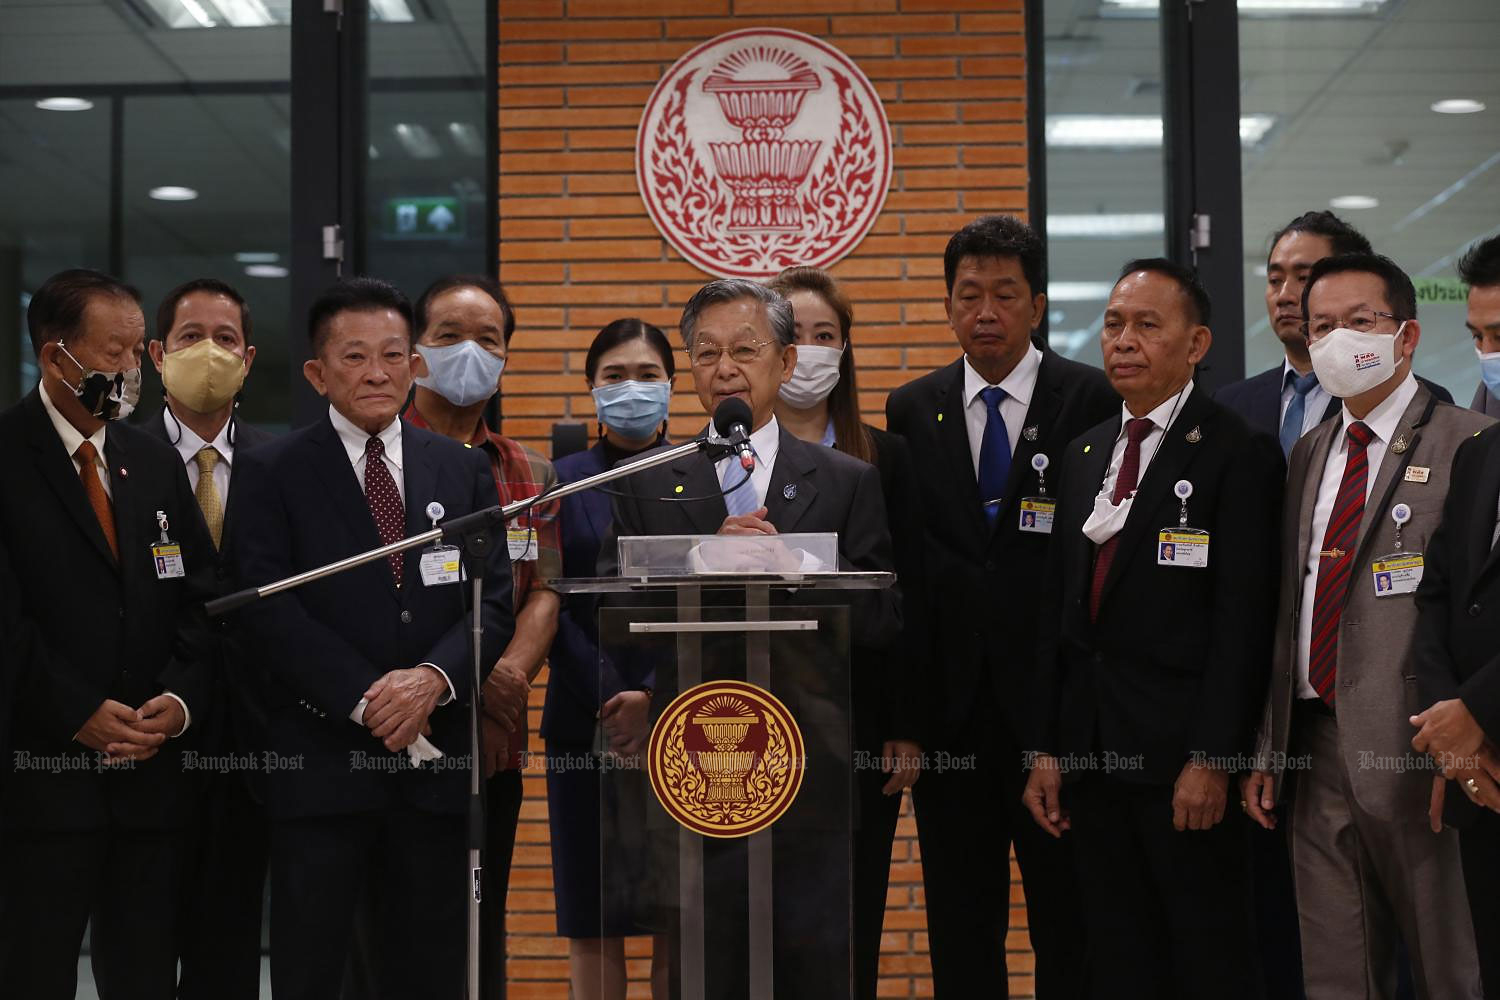 House Speaker Chuan Leekpai, at mic, accepts a motion seeking charter changes from Pheu Thai leader Sompong Amornvivat. (Photo by Pornprom Satrabhaya)